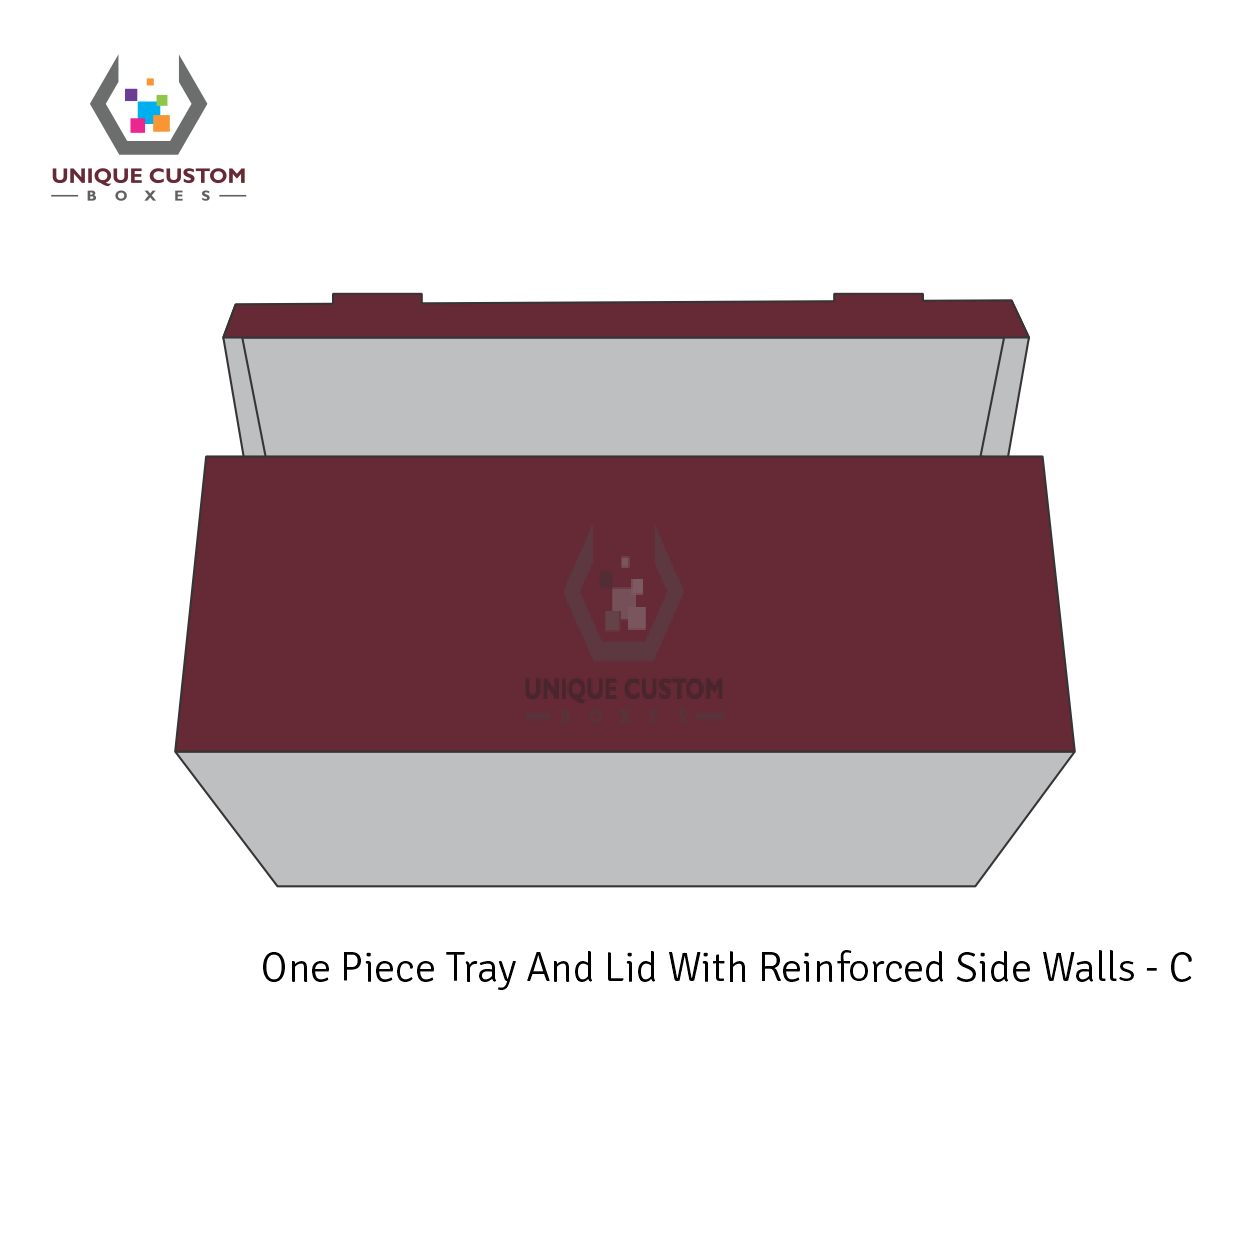 One-Piece-Tray-And-Lid-With-Reinforced-Side-Walls-3